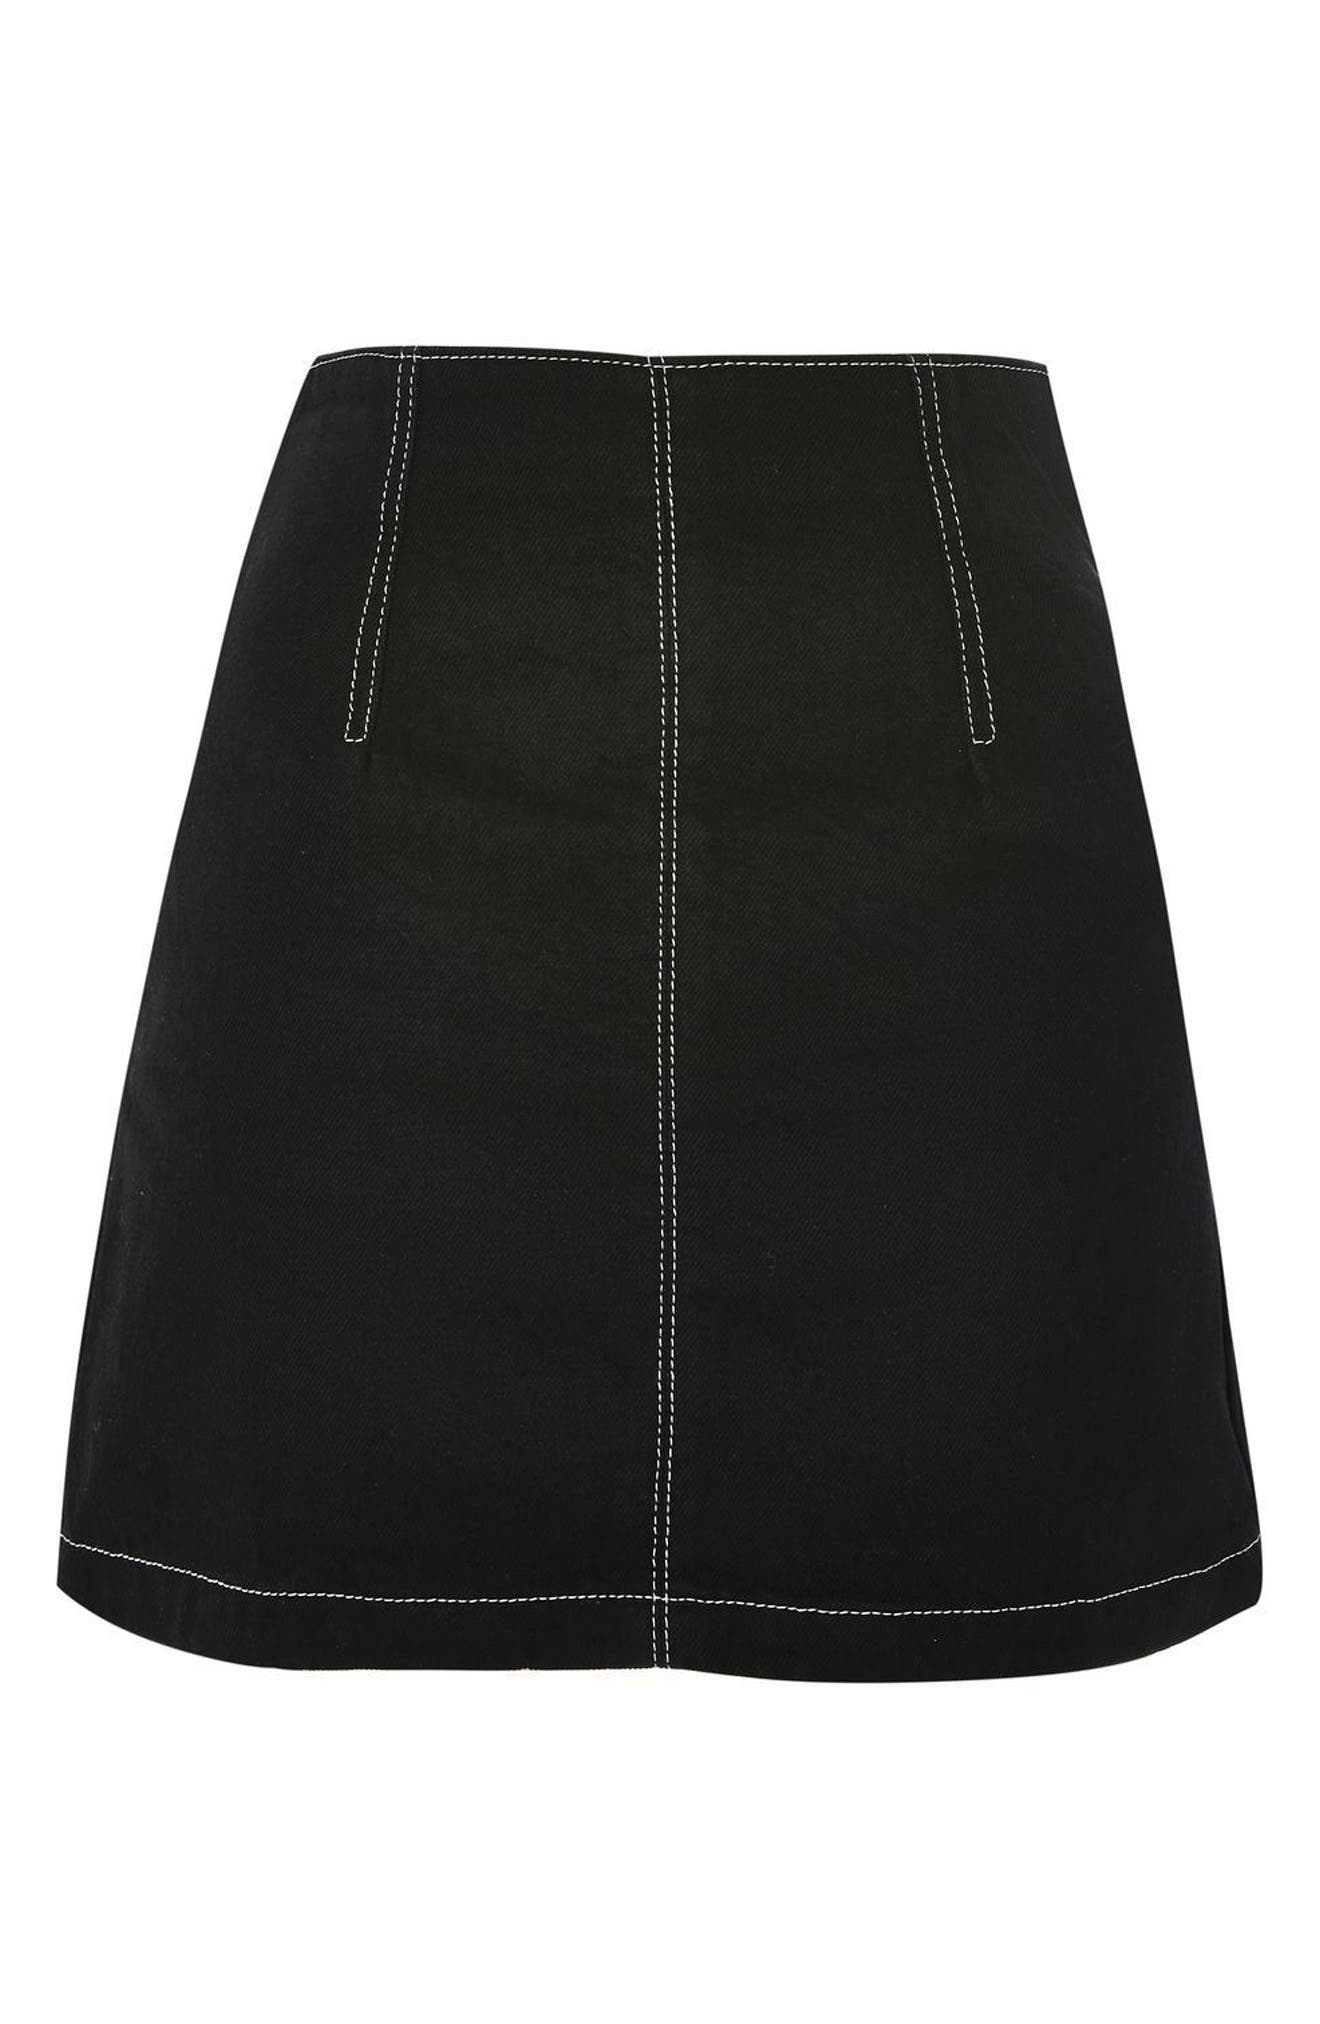 Alternate Image 3  - Topshop Contrast Stitch Denim Skirt